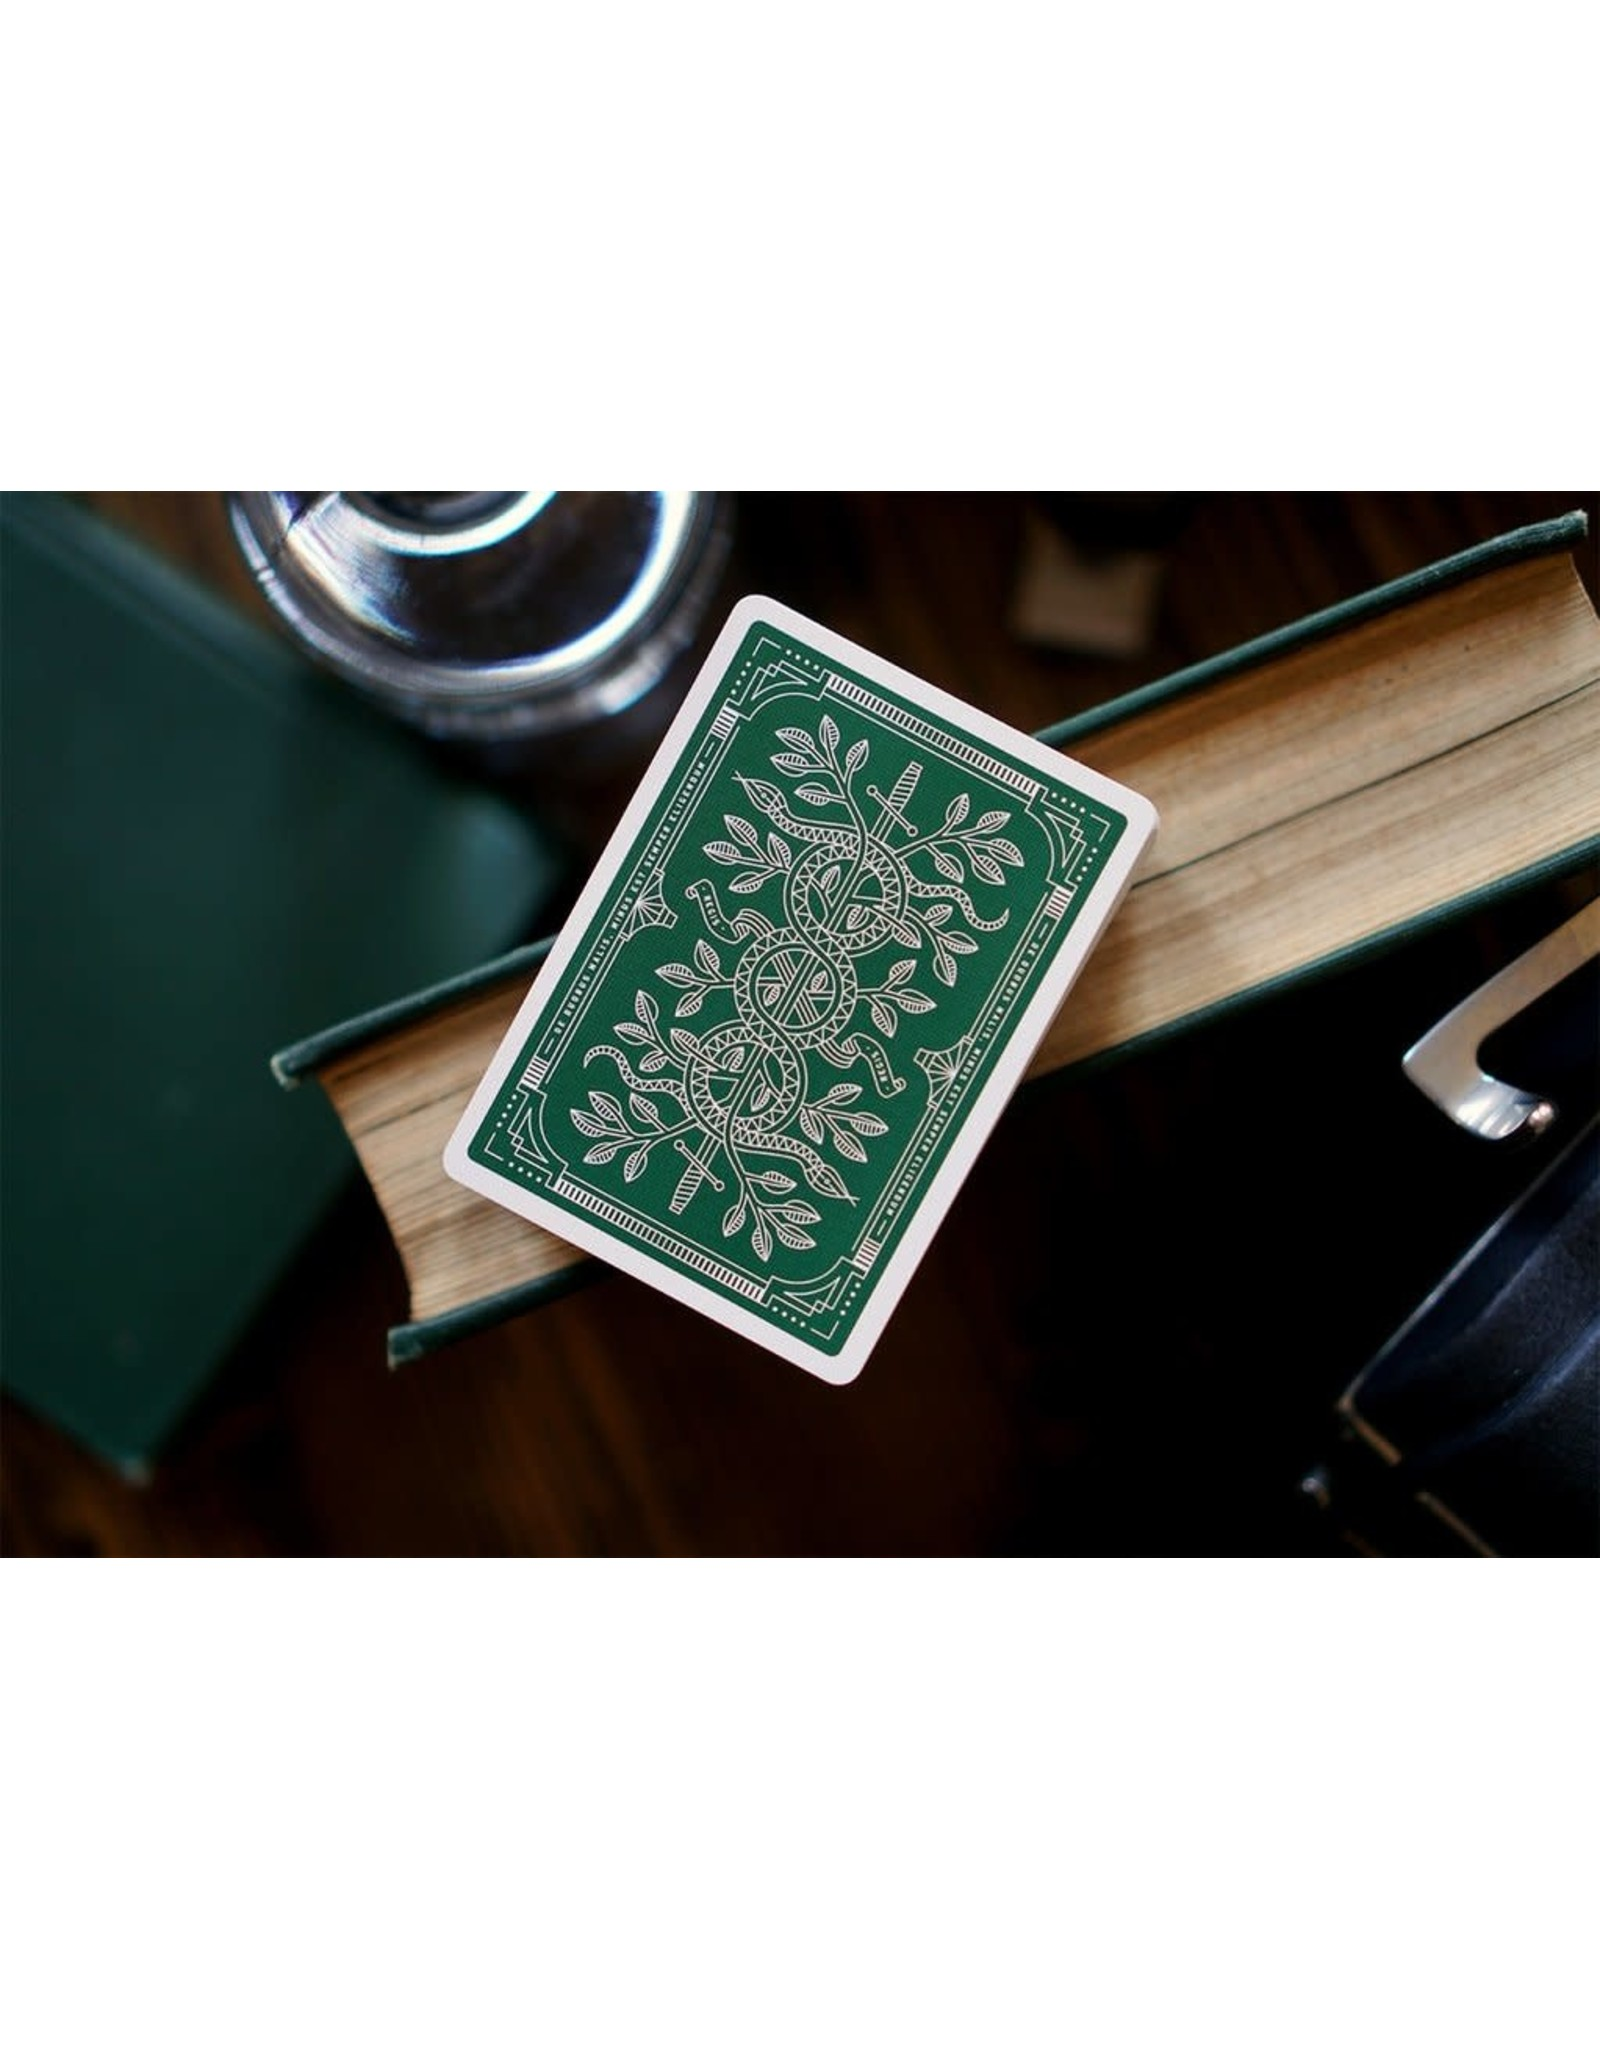 theory11 Theory 11 Cards Monarch Green